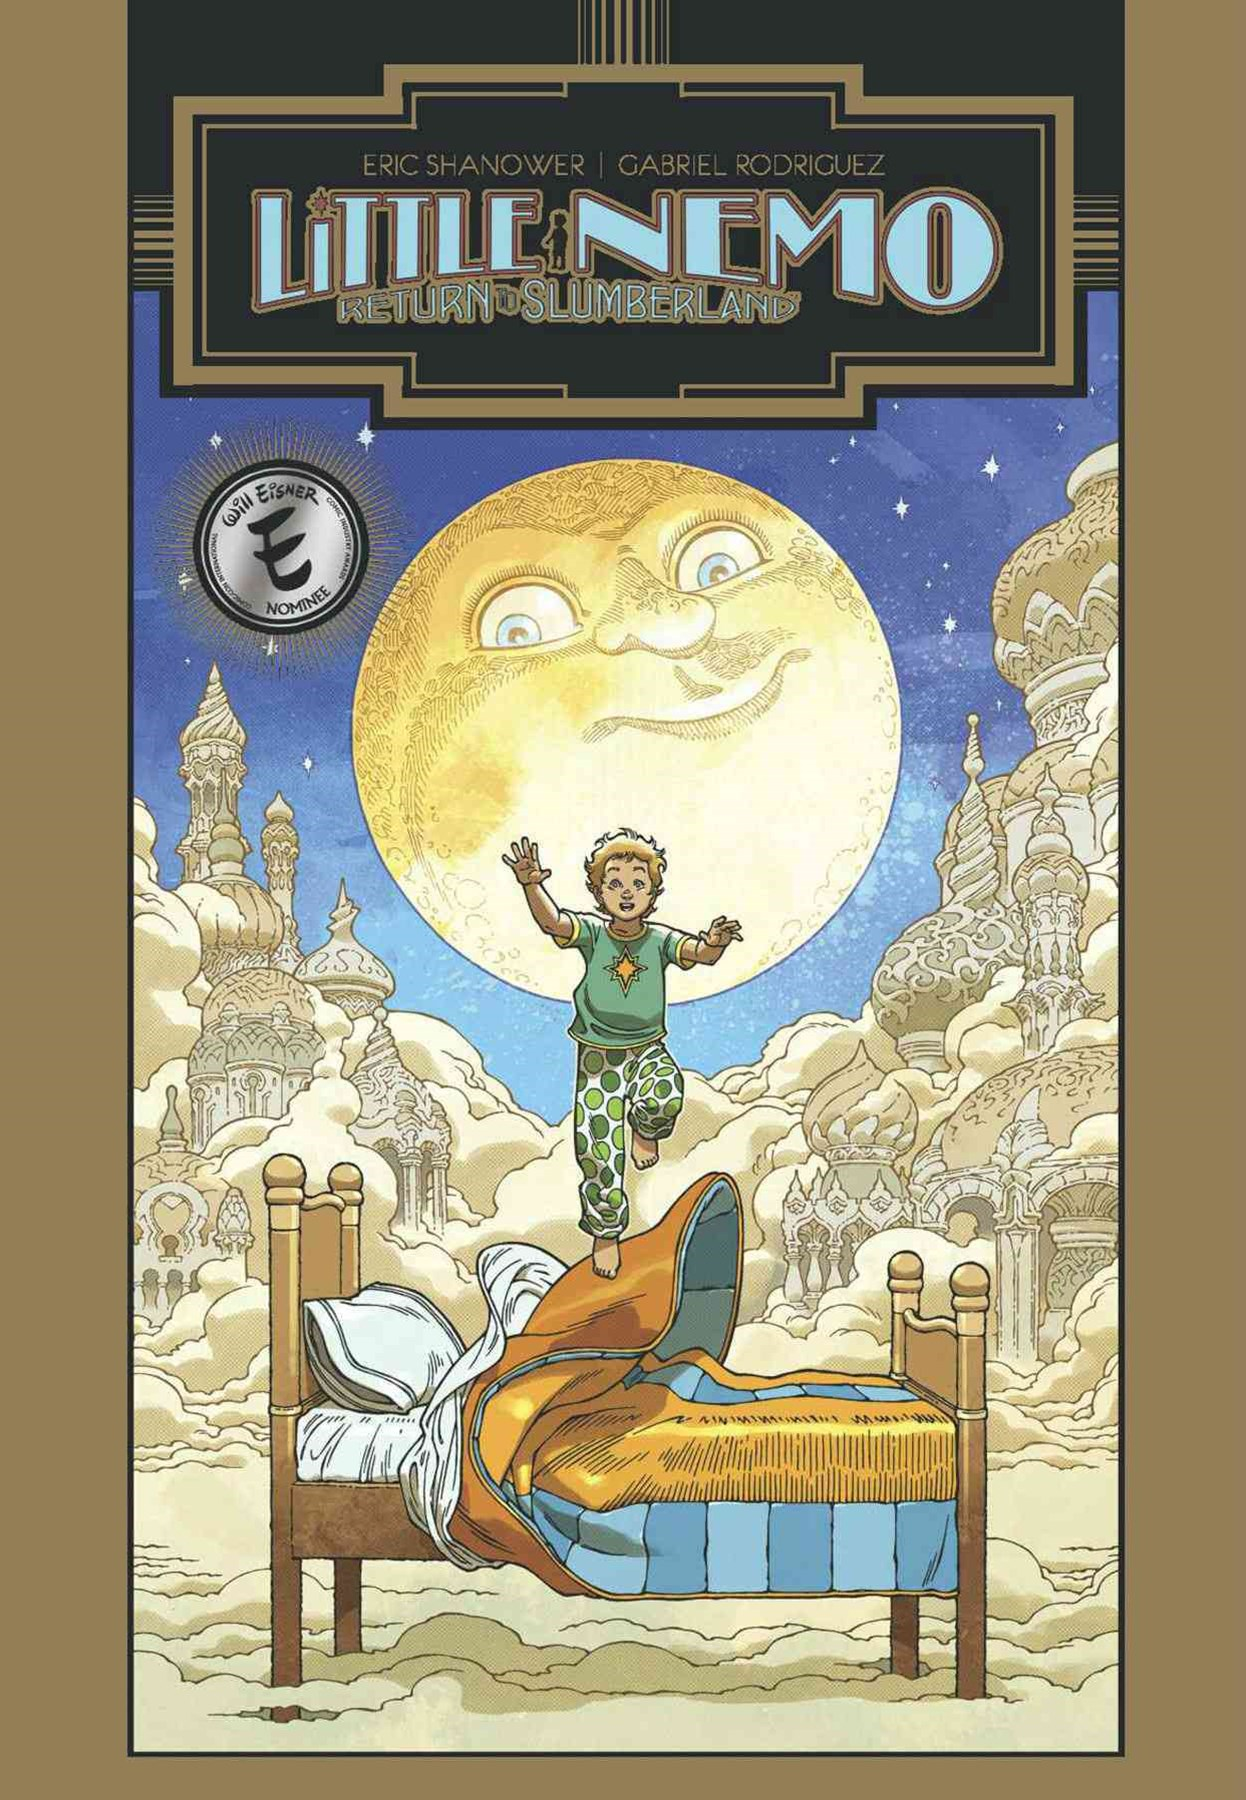 Little Nemo Return To Slumberland